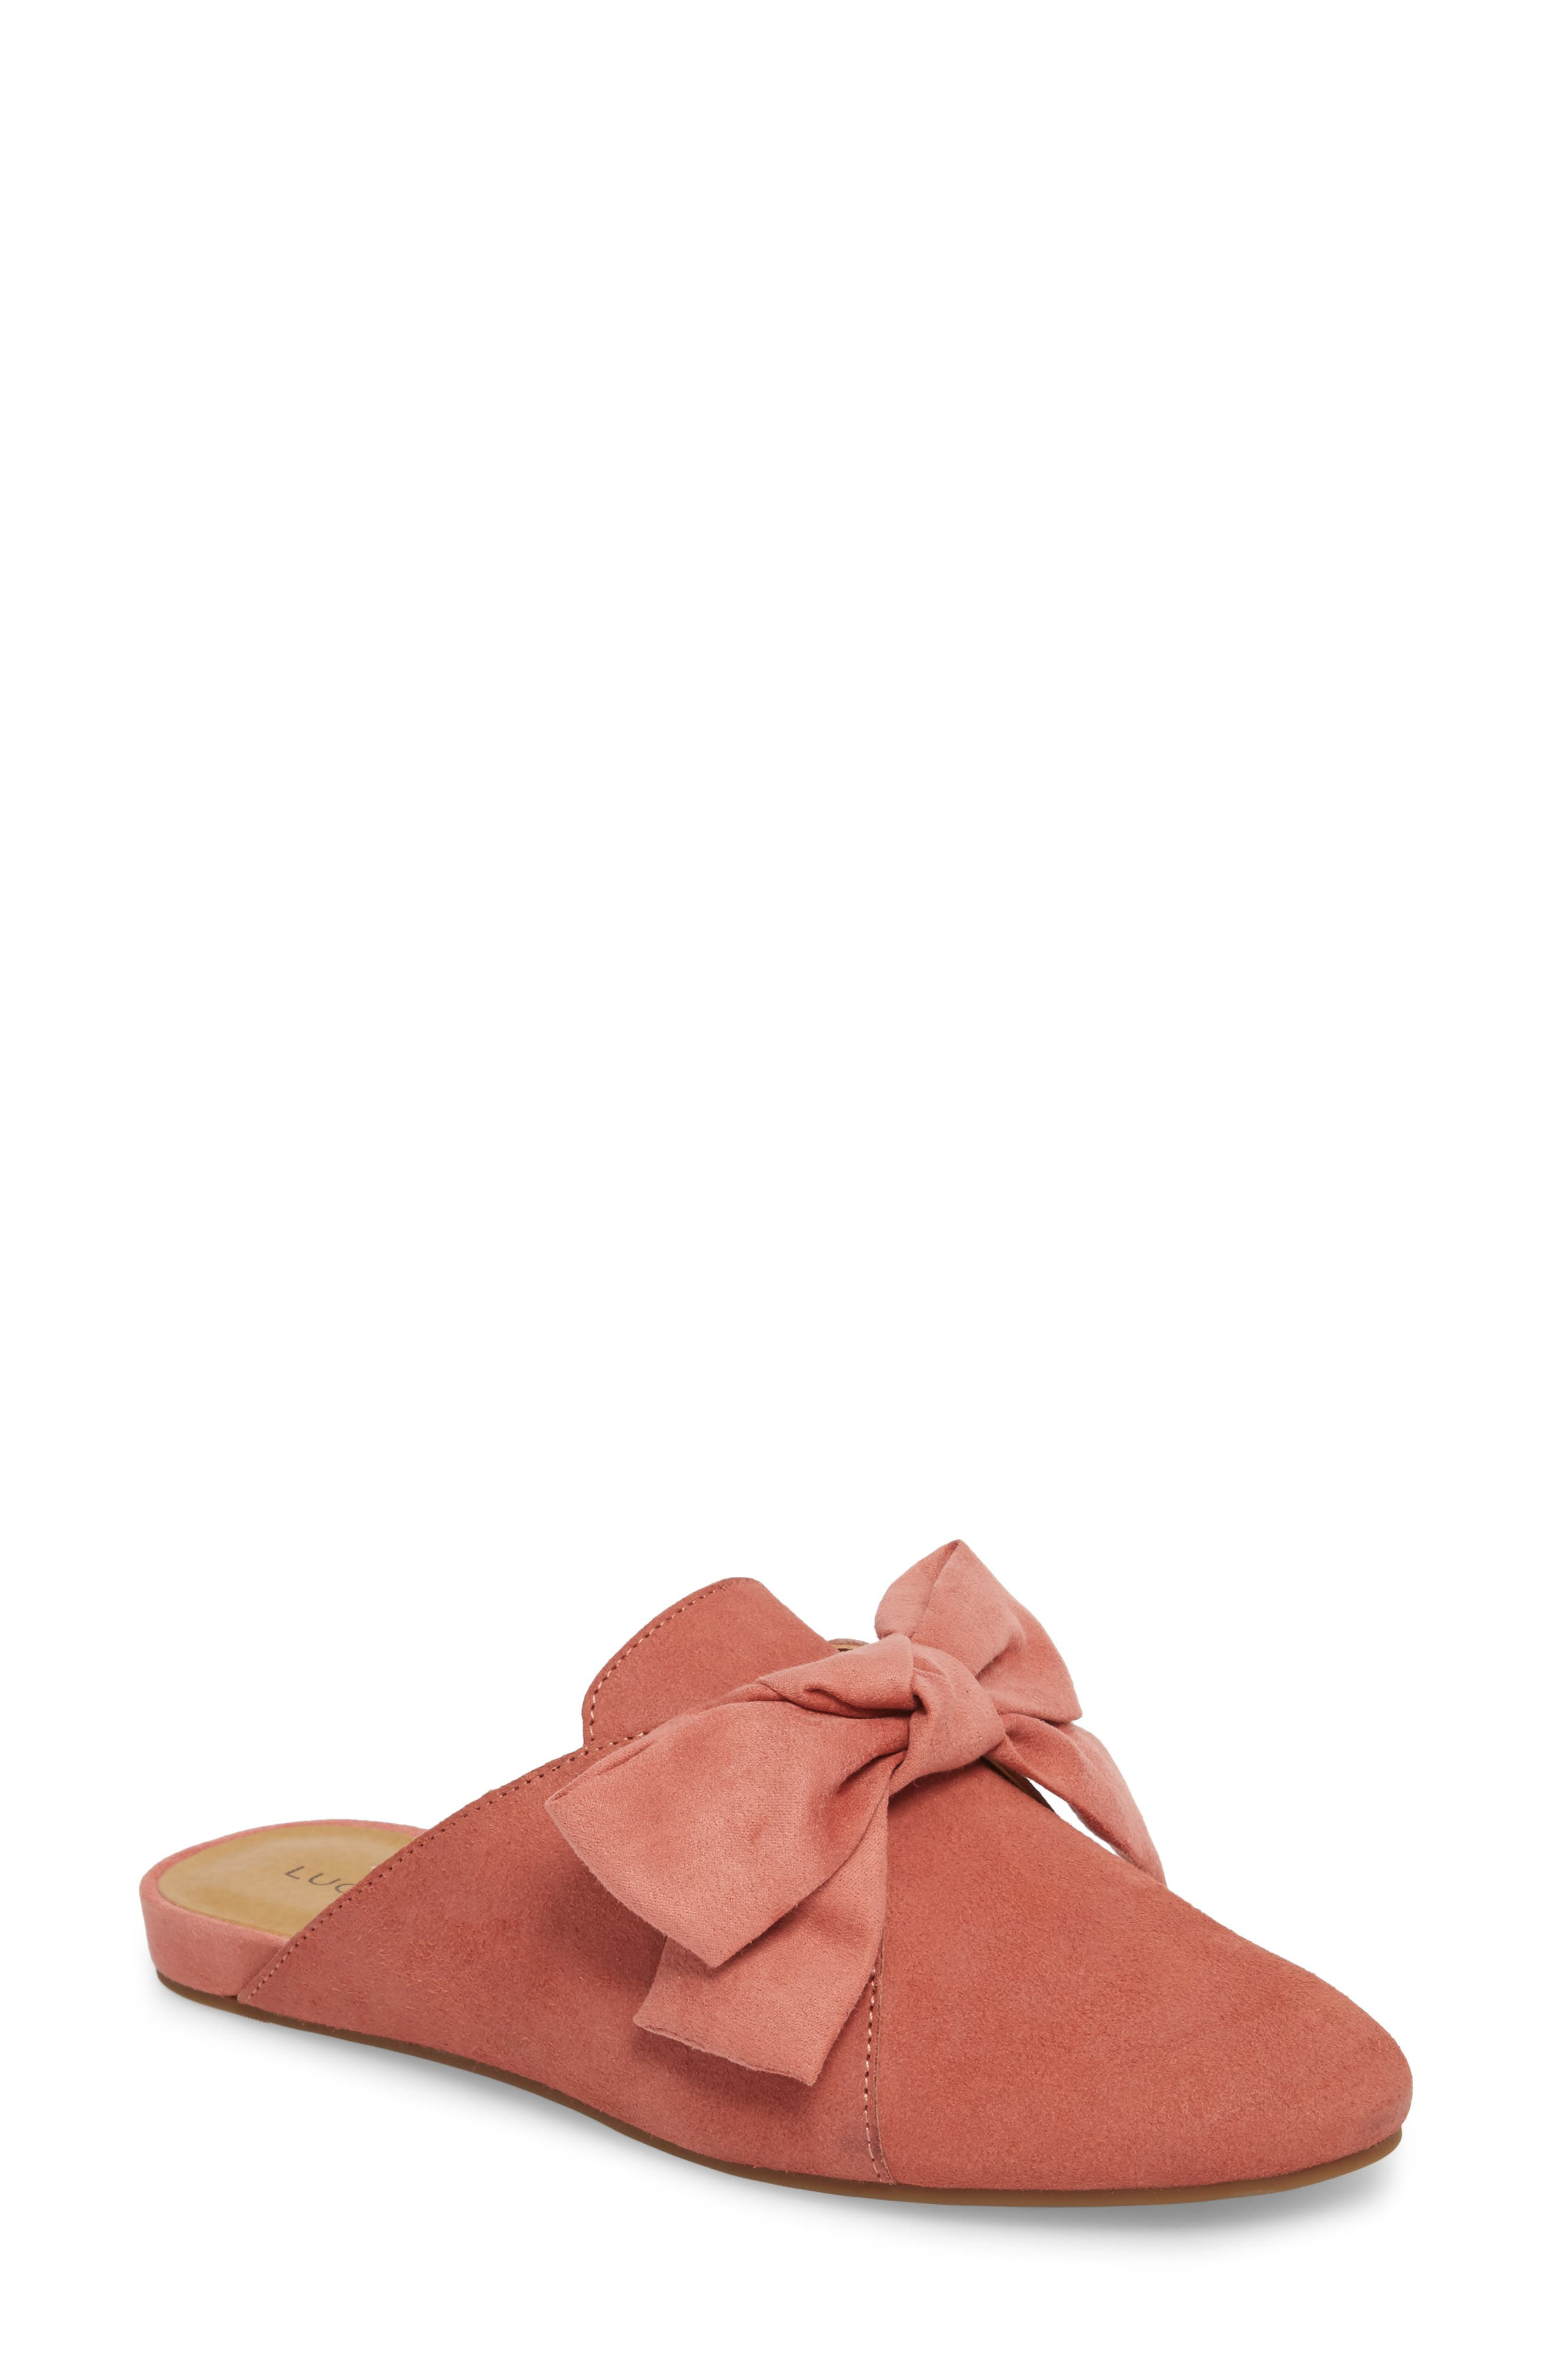 Florean Bow Loafer Mule,                             Main thumbnail 1, color,                             Canyon Rose Leather